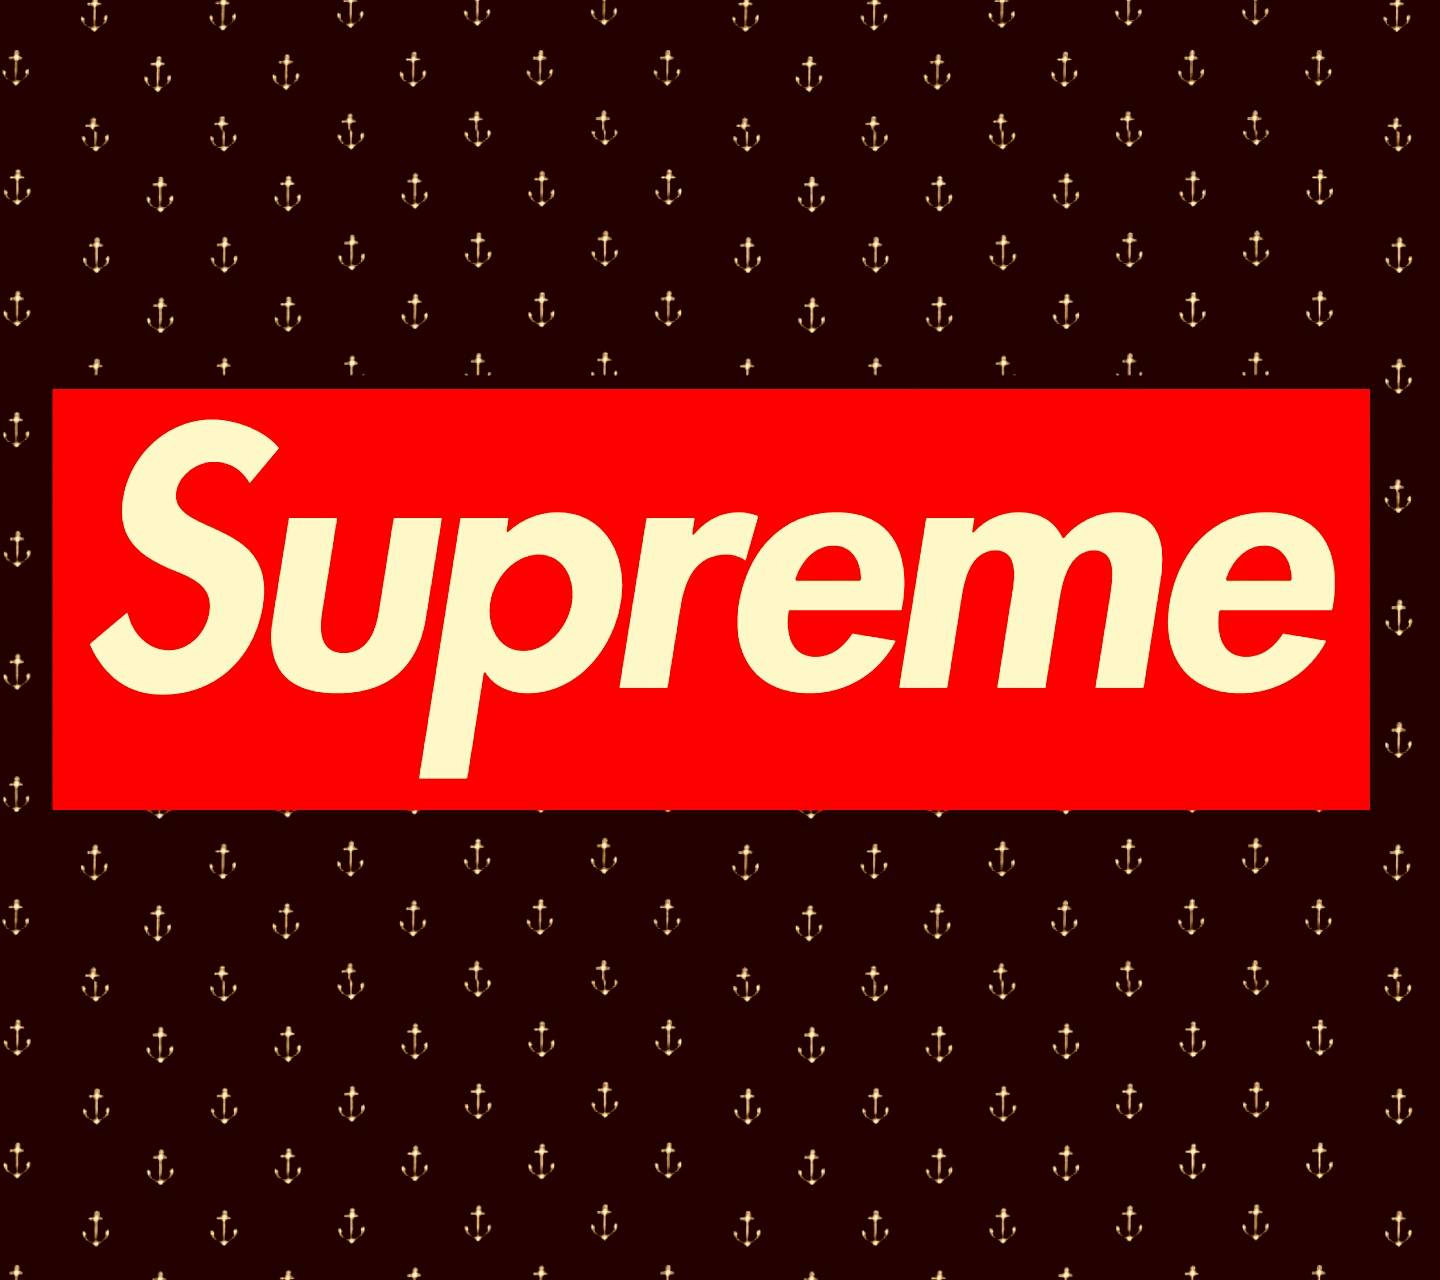 Supreme Wallpaper Updated on May 31  2018 By Heer Comments Off on Supreme Wallpaper